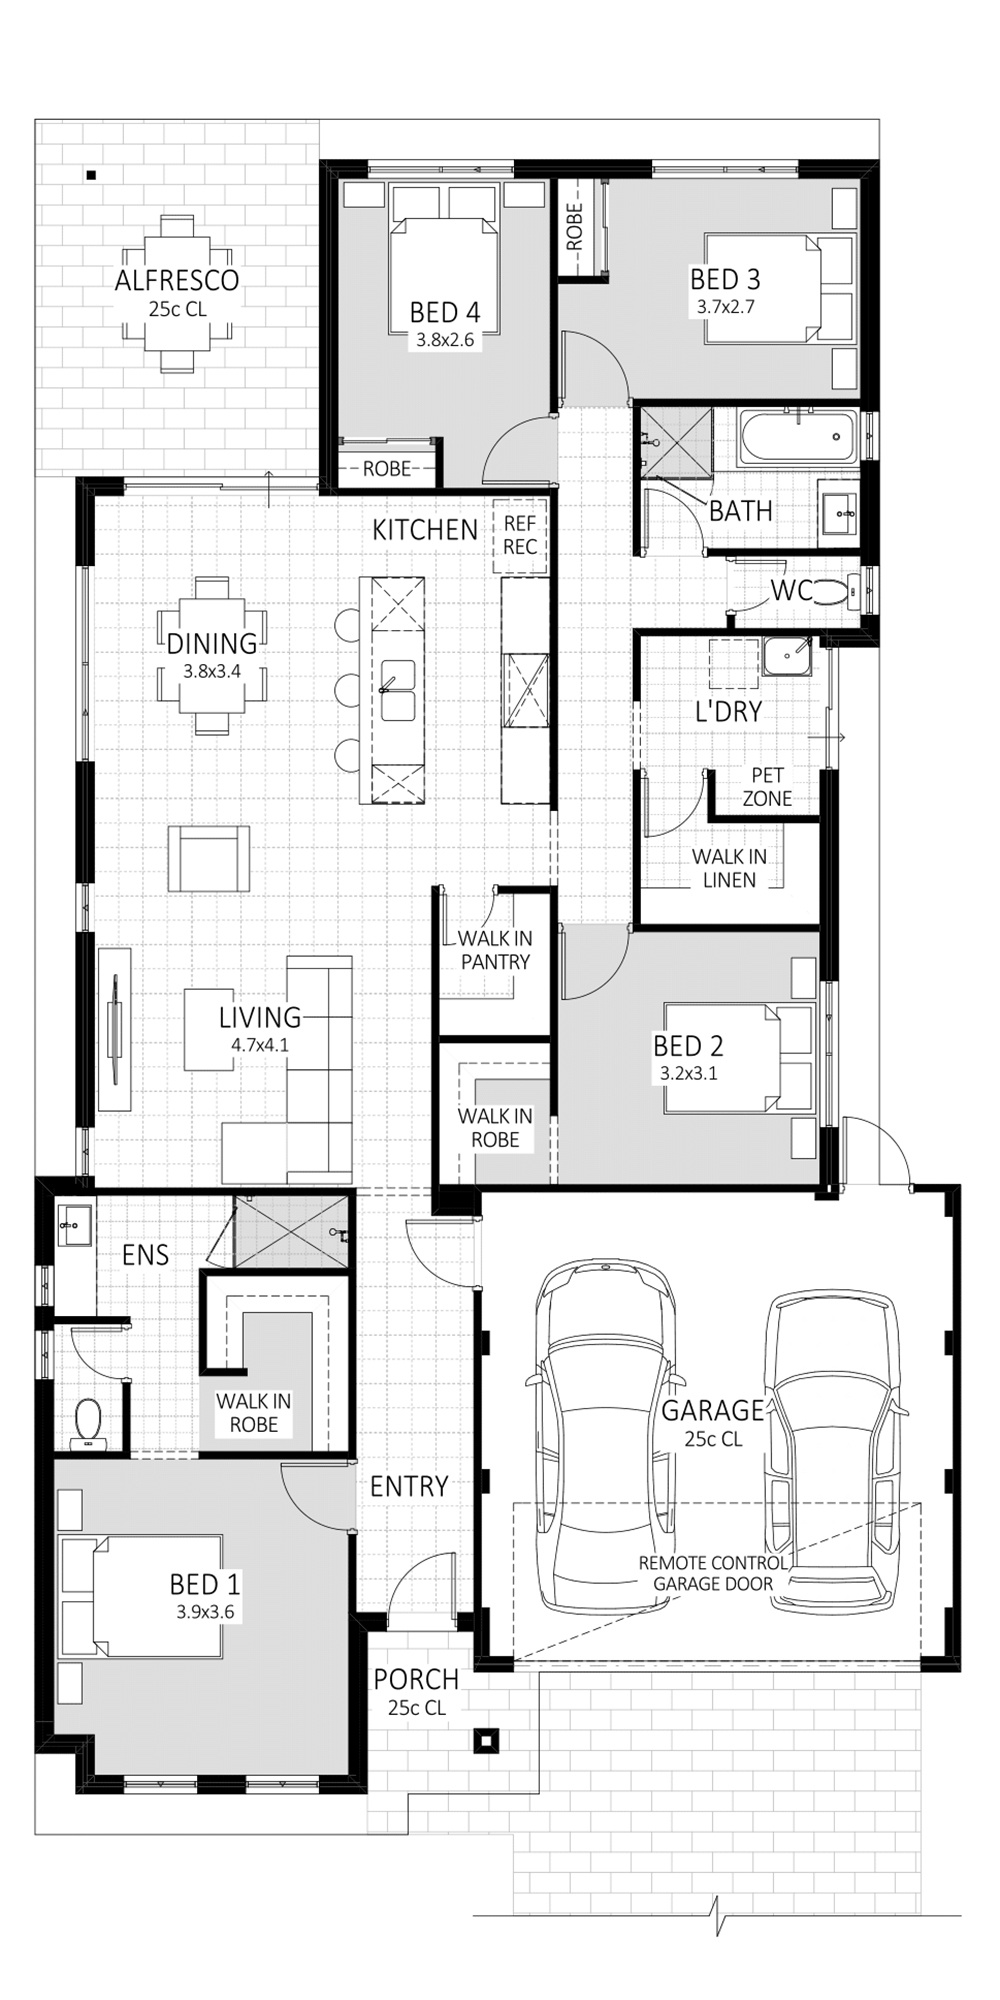 Revelation floorplan